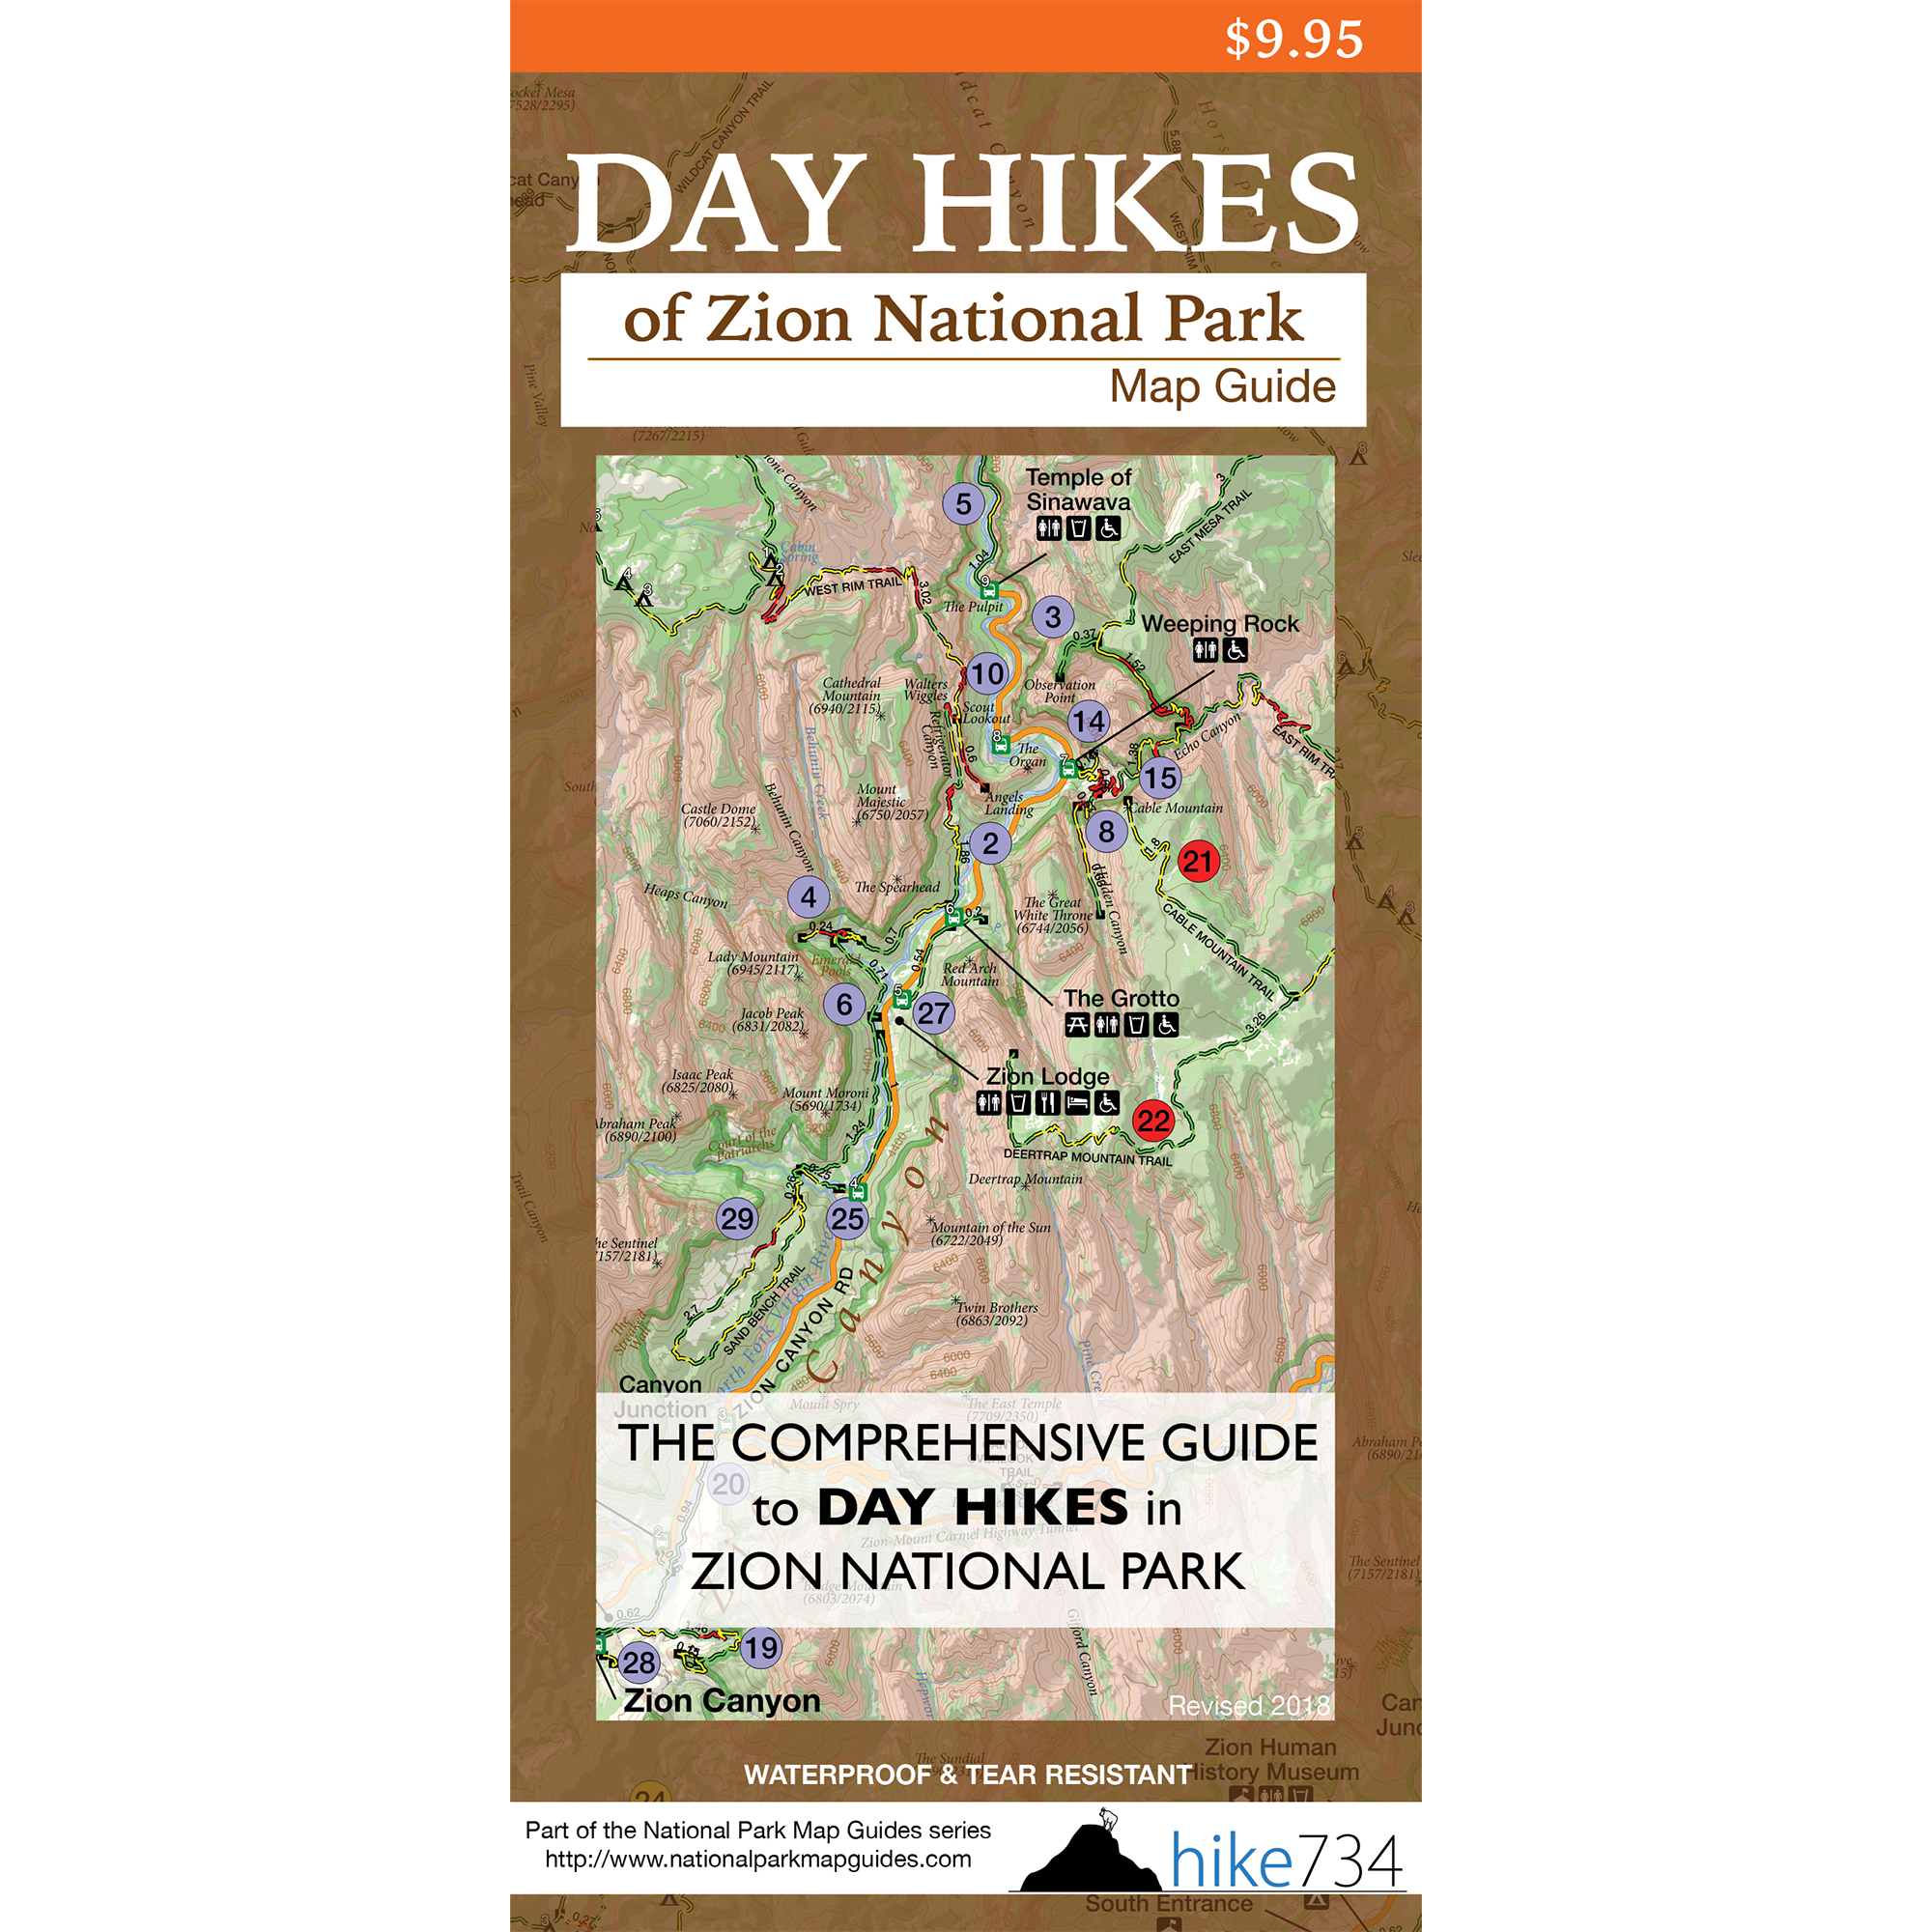 Day Hikes of Zion National Park Map Guide on national hiking trails map, angels landing trail map, cuyahoga valley national park trail map, draper trail map, zion east rim trail map, colorado national monument trail map, yellowstone national park map, chickasaw national recreation area trail map, black mountains trail map, white river national forest trail map, big cypress national preserve trail map, petrified forest trail map, kaibab national forest trail map, mt. zion utah map, capitol reef trail map, glacier national park on us map, cuyamaca rancho state park trail map, beacon rock state park trail map, san isabel national forest trail map, fishlake national forest trail map,